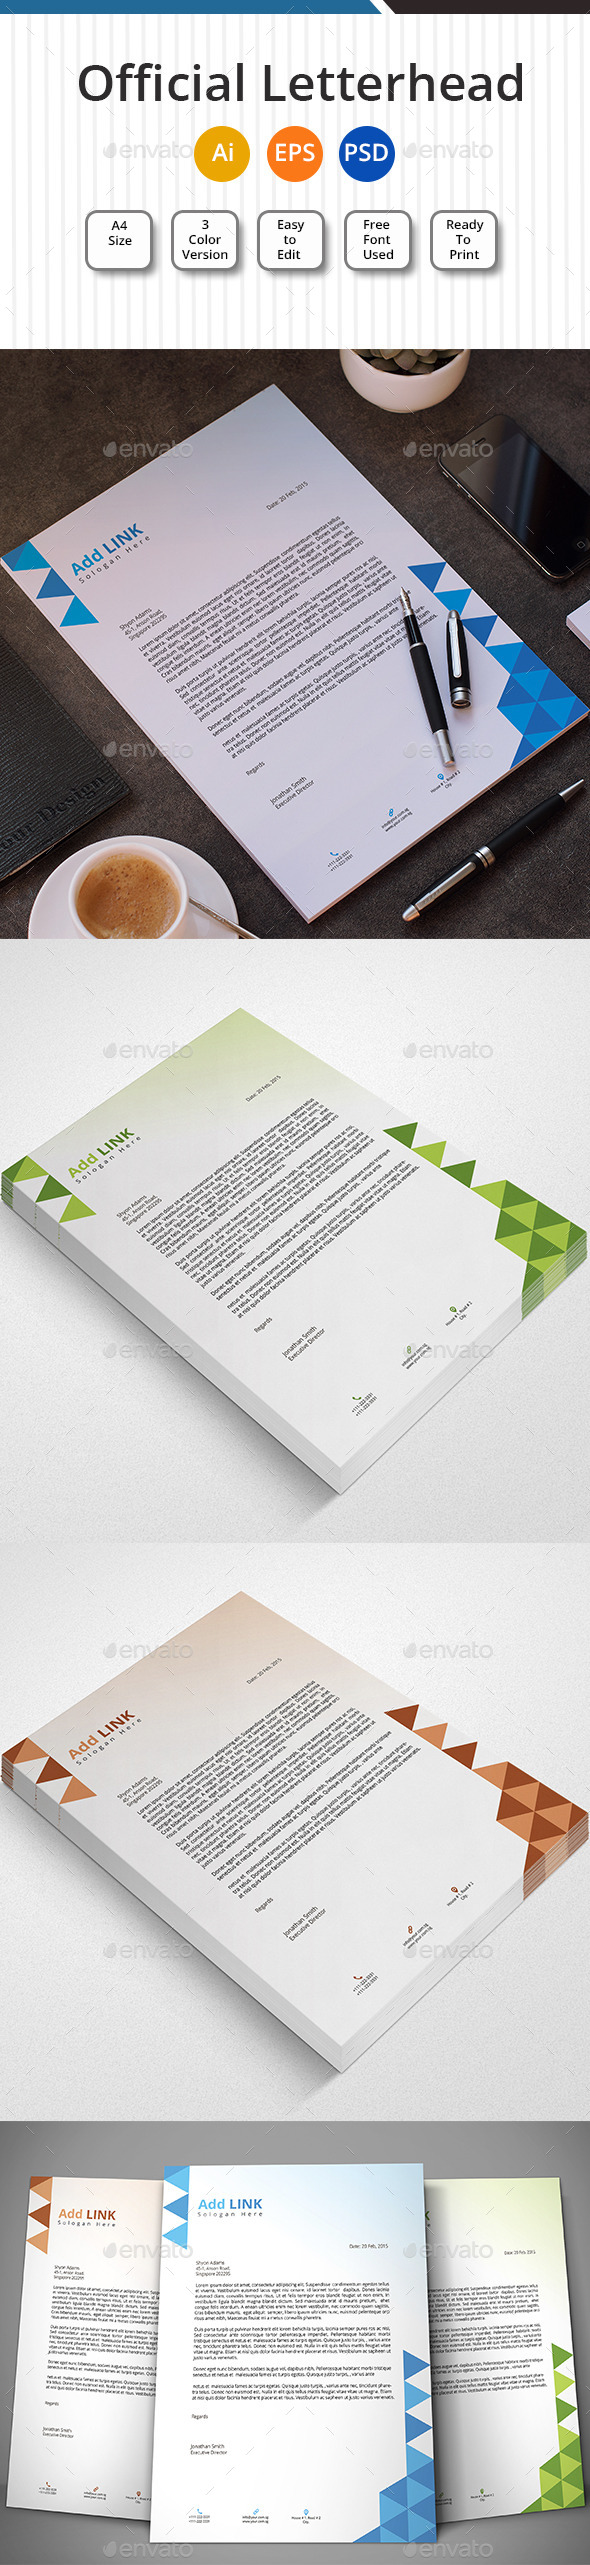 Official Letterhead  - Stationery Print Templates